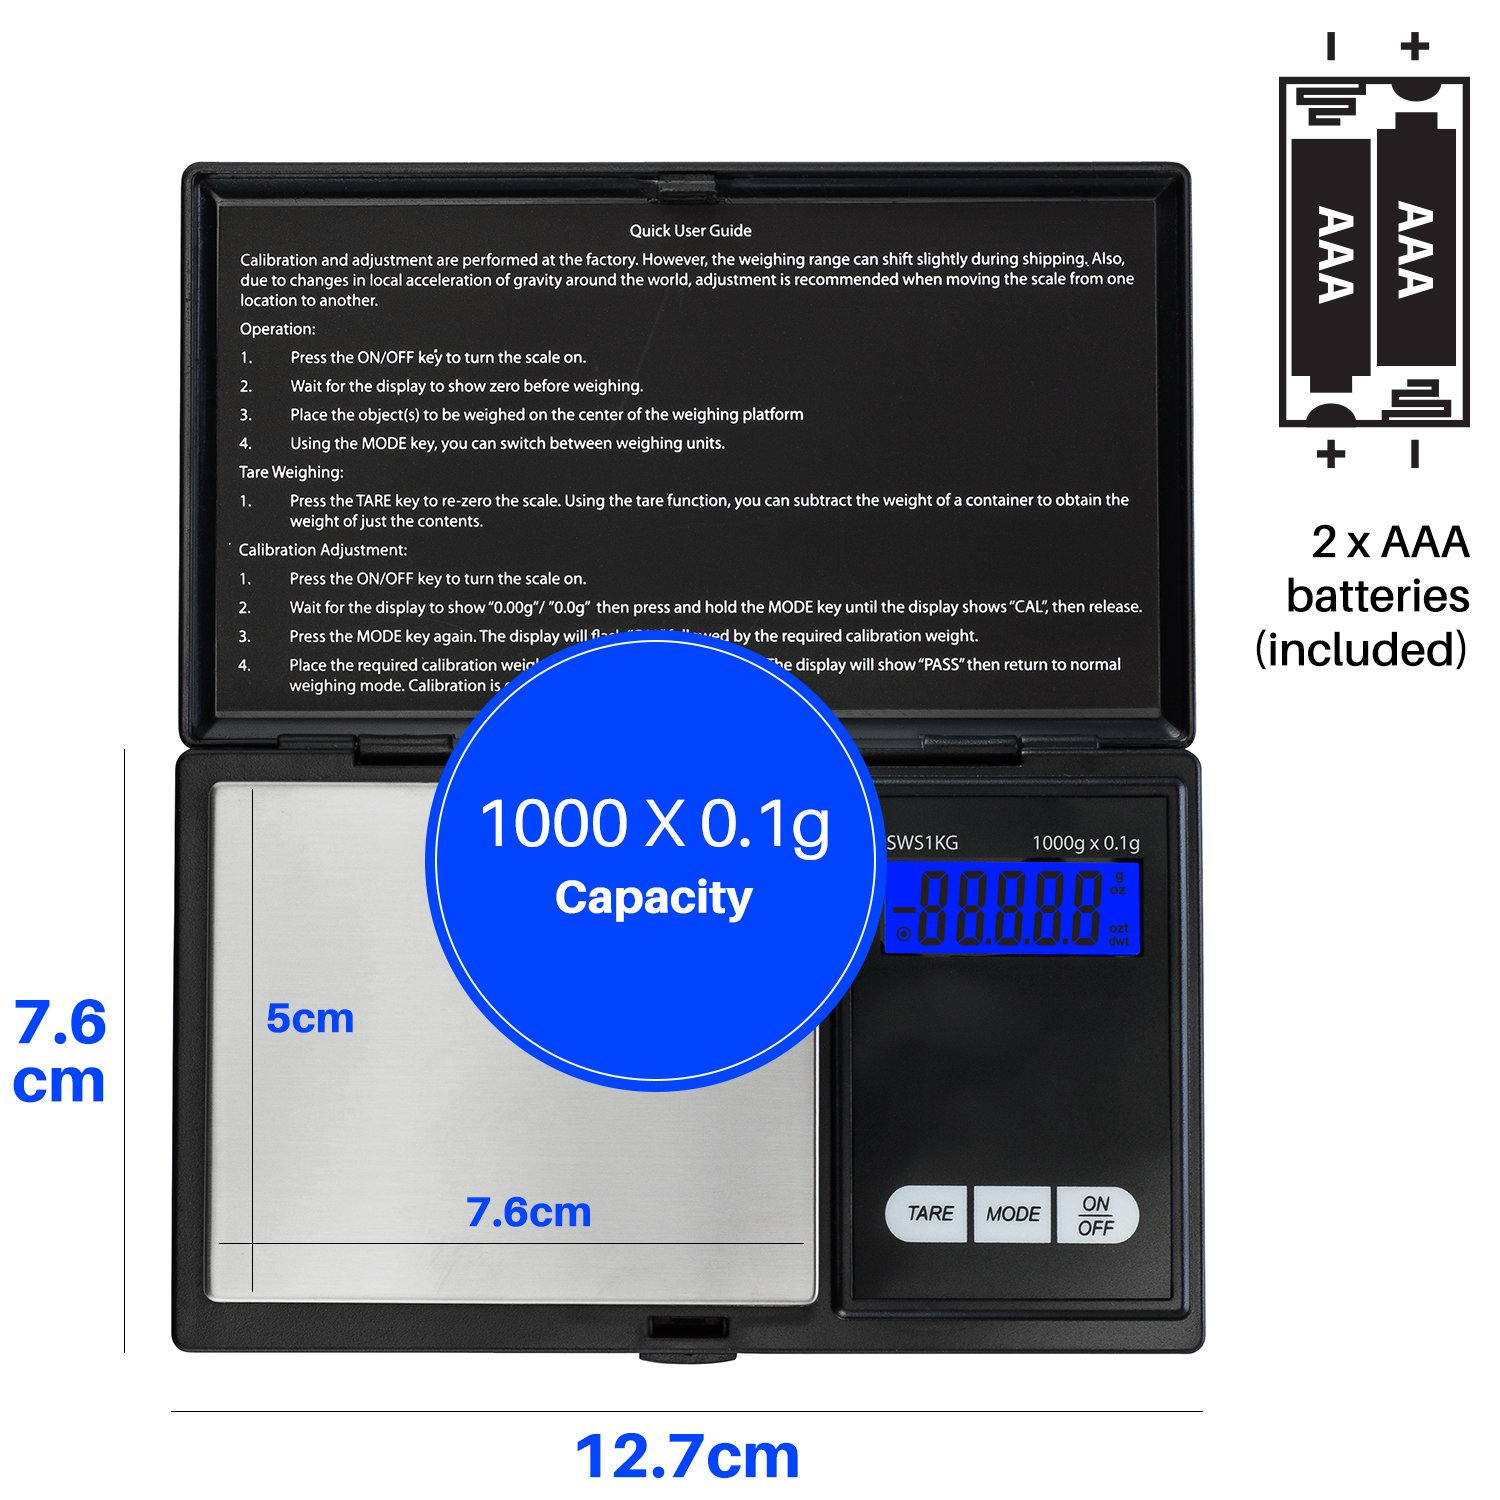 Smart Weigh SWS1KG Elite Series Digital Pocket Scale, 1000 by 0.1gm, Black by Smart Weigh (Image #7)